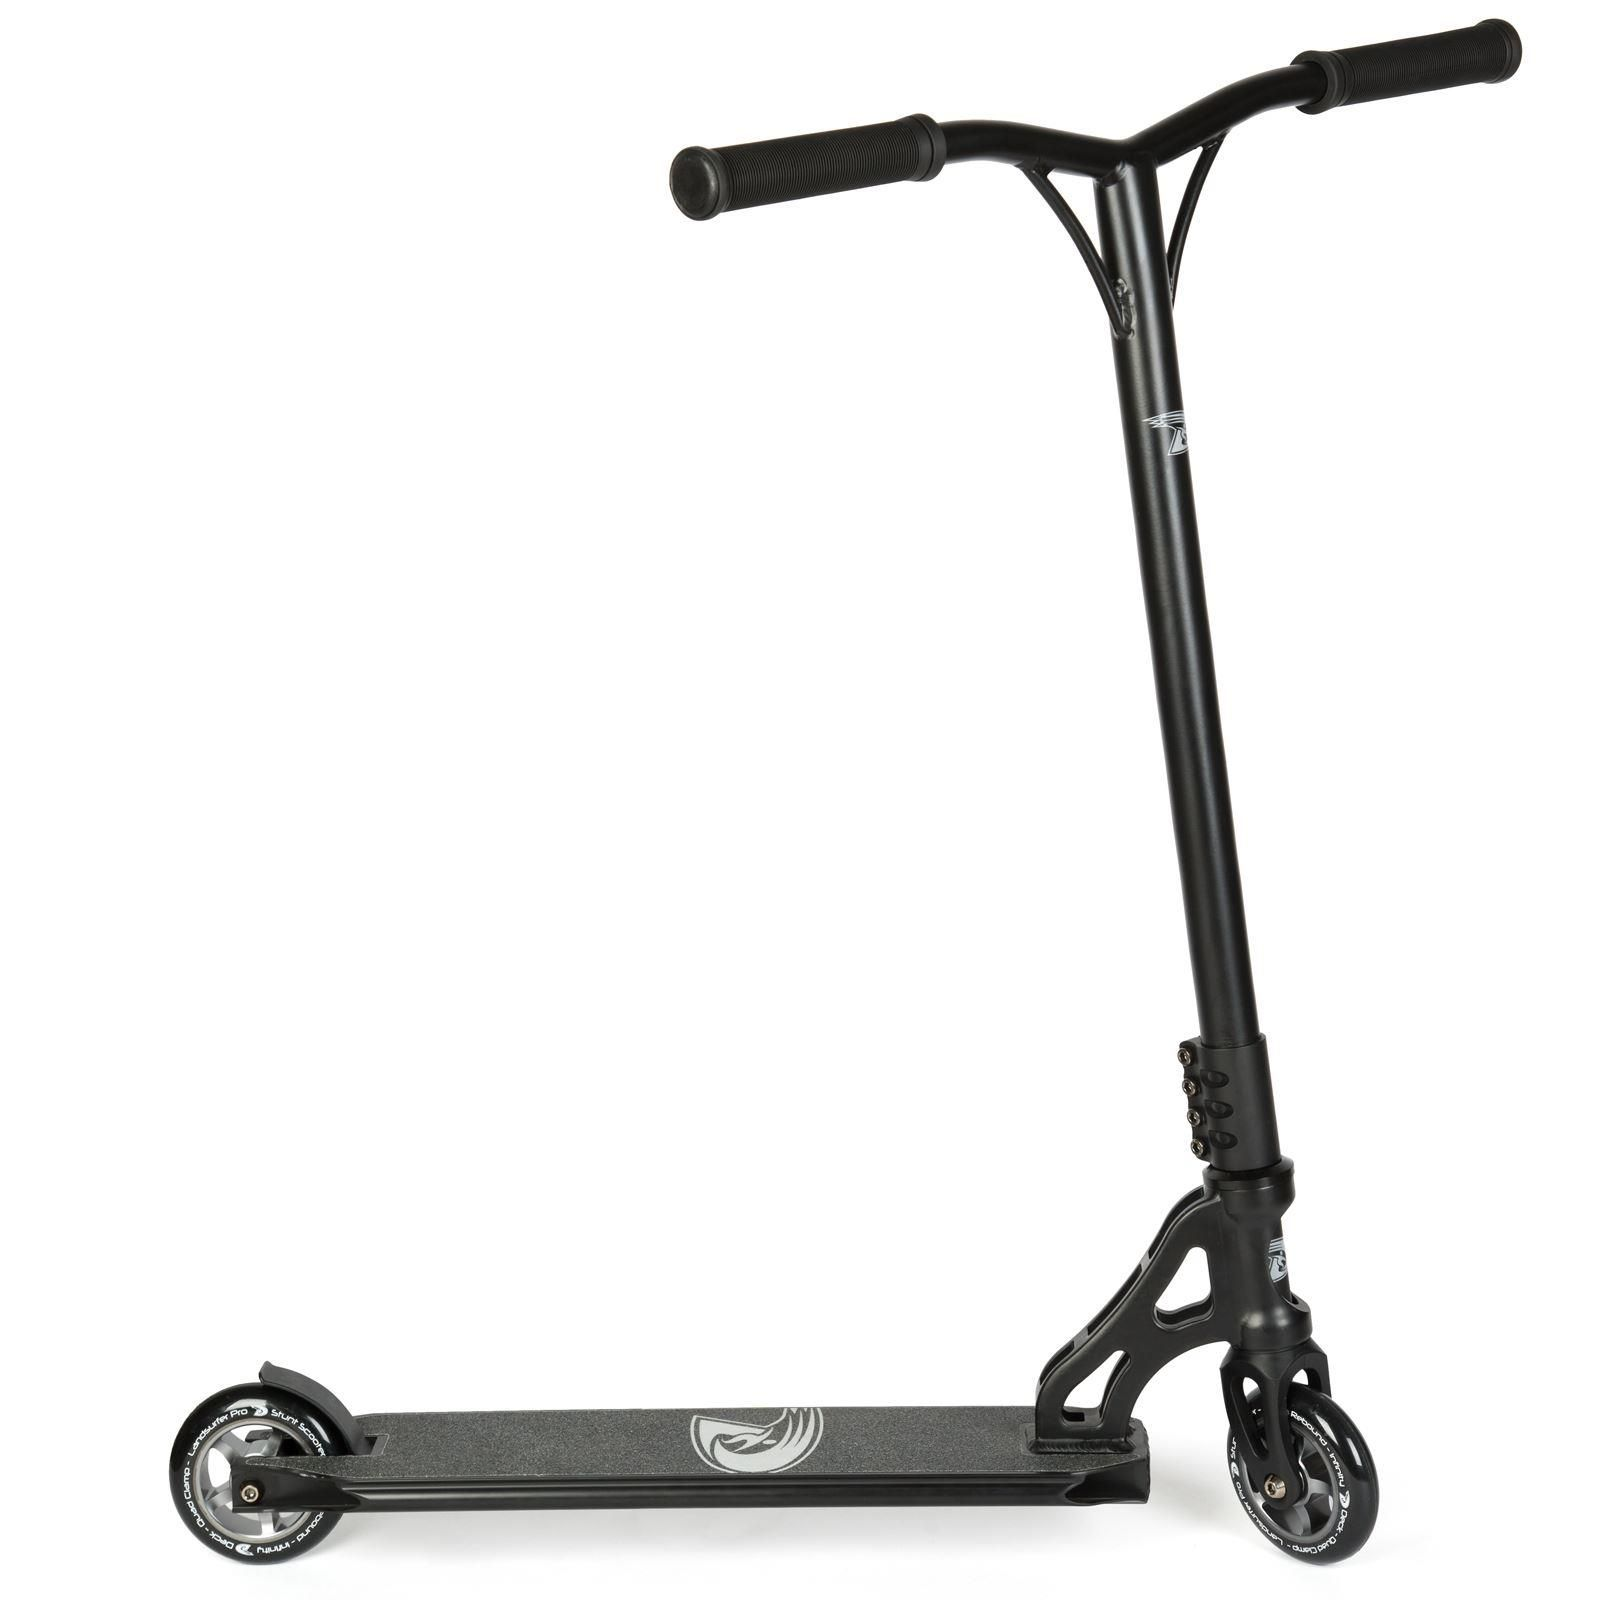 Land Surfer Pro Stunt Scooter Black